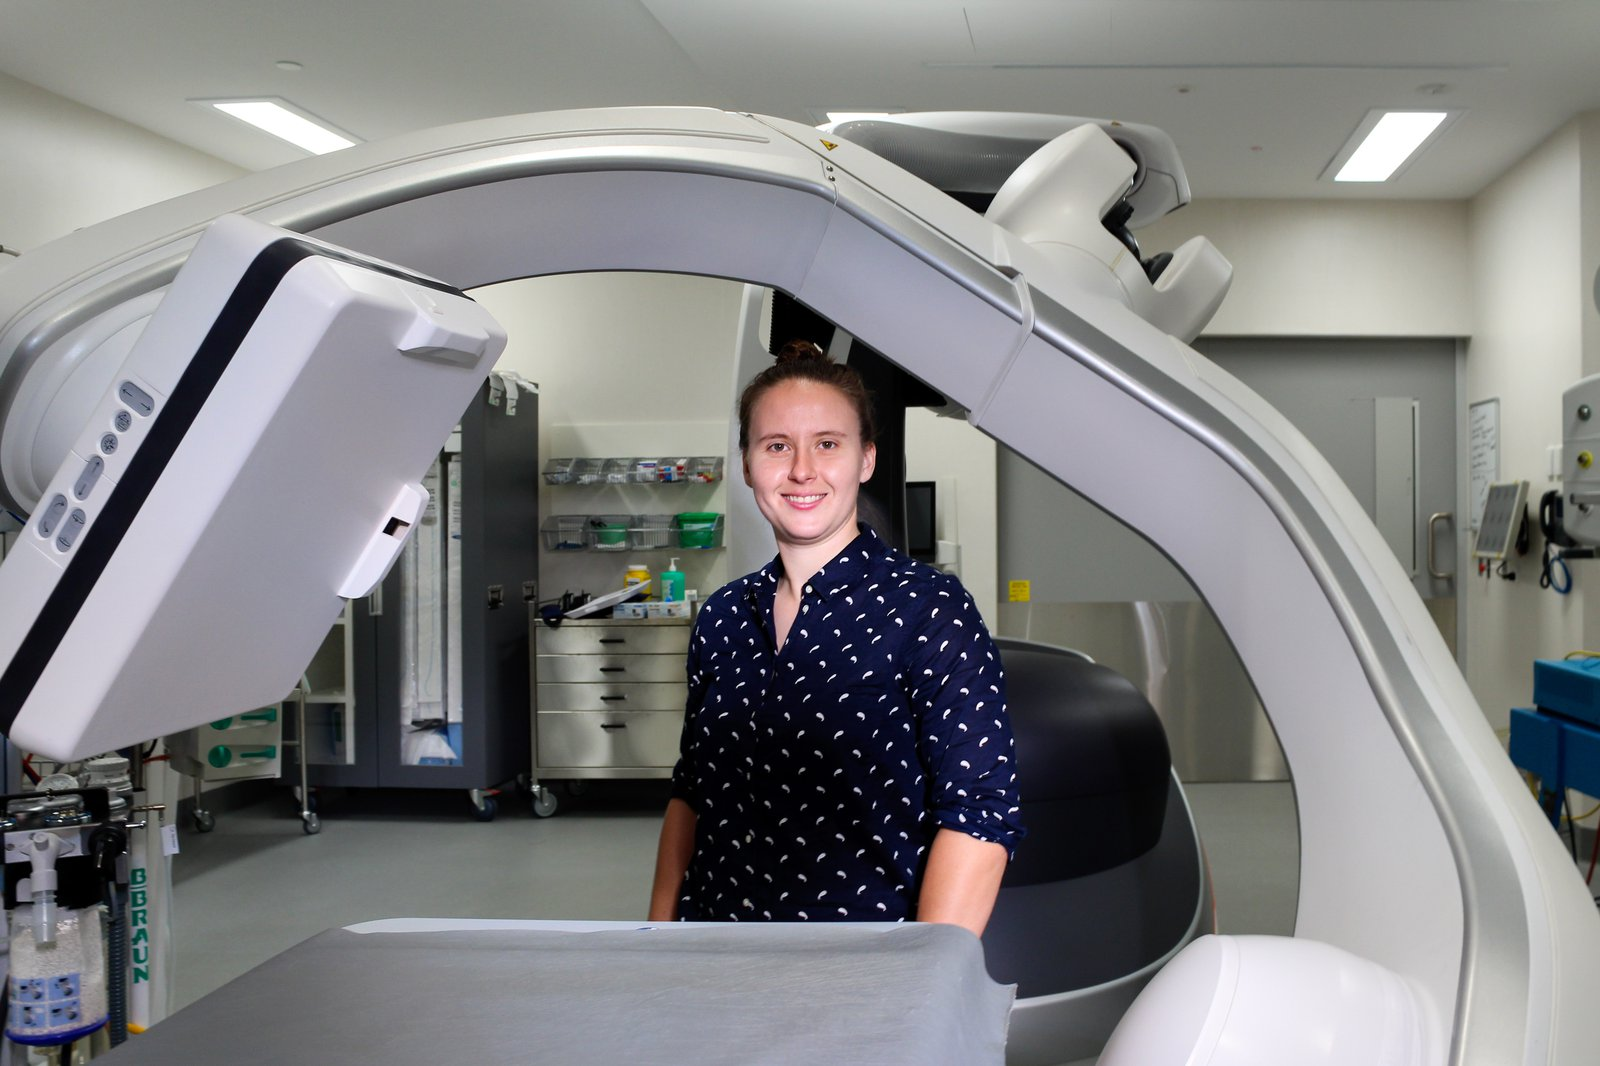 Dr Tess Reynolds - Finalist, 2021 Macquarie University Eureka Prize for Outstanding Early Career Researcher